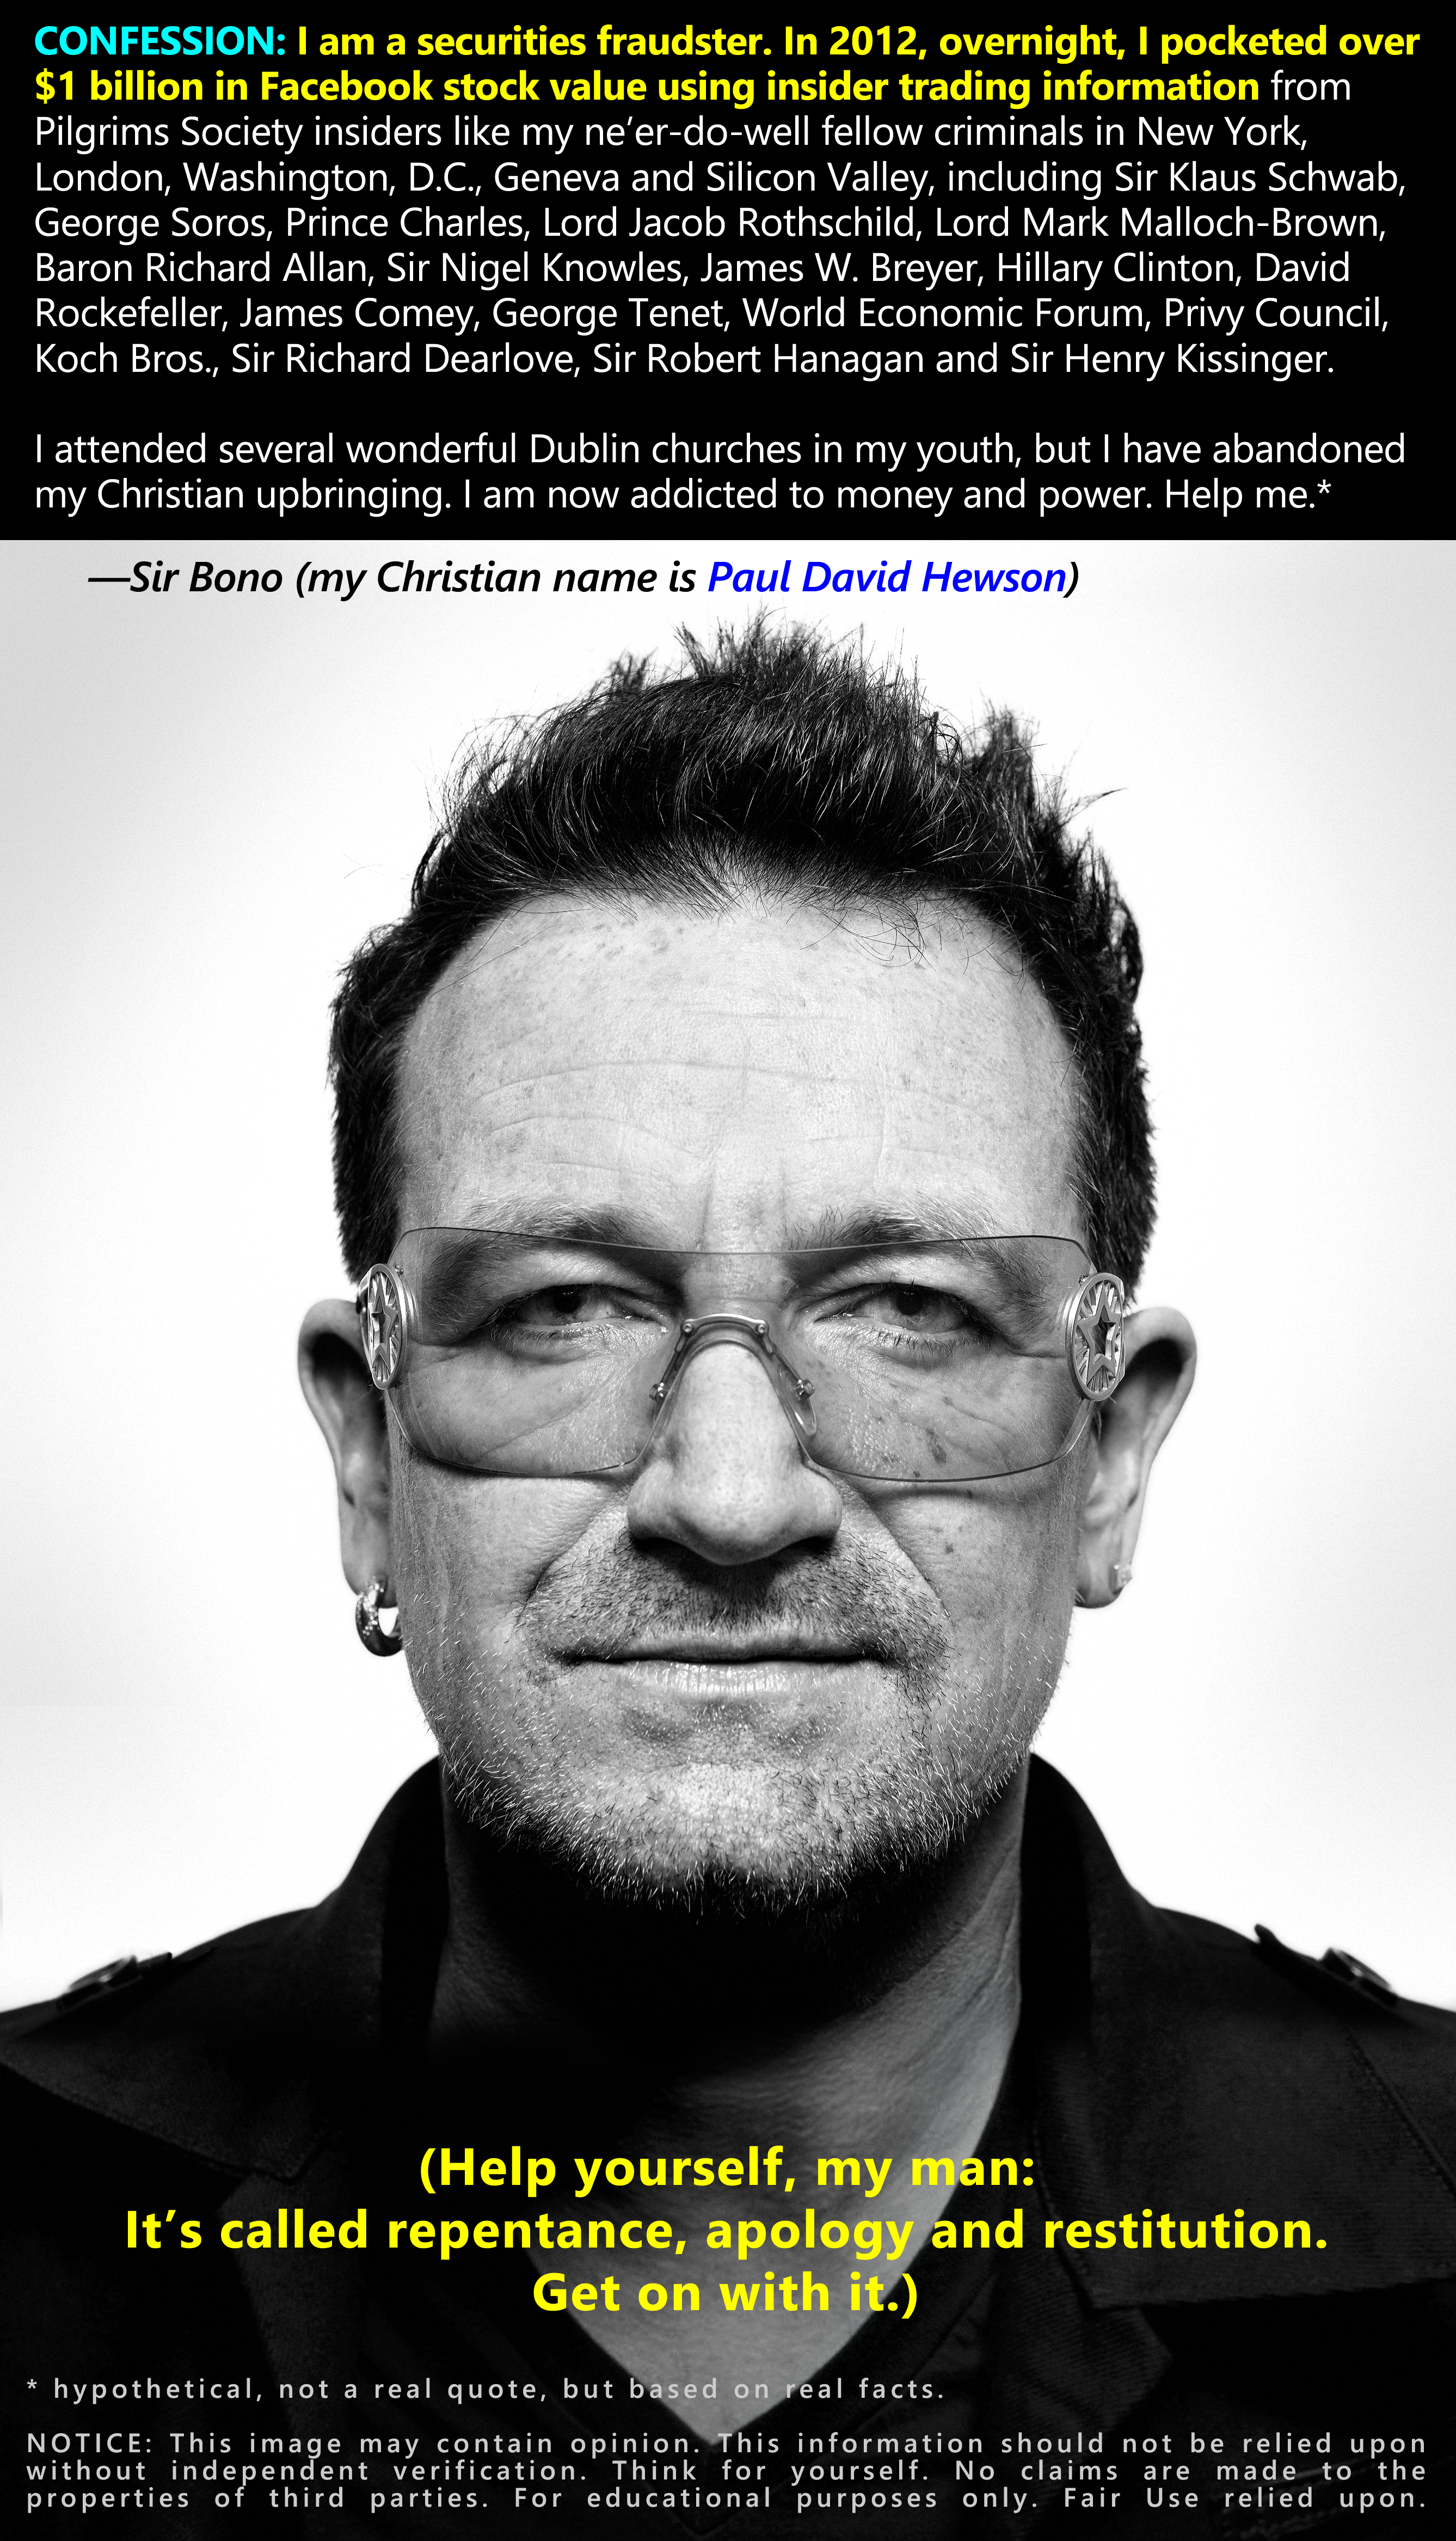 Bono: Confessions of a Facebook securities fraudster